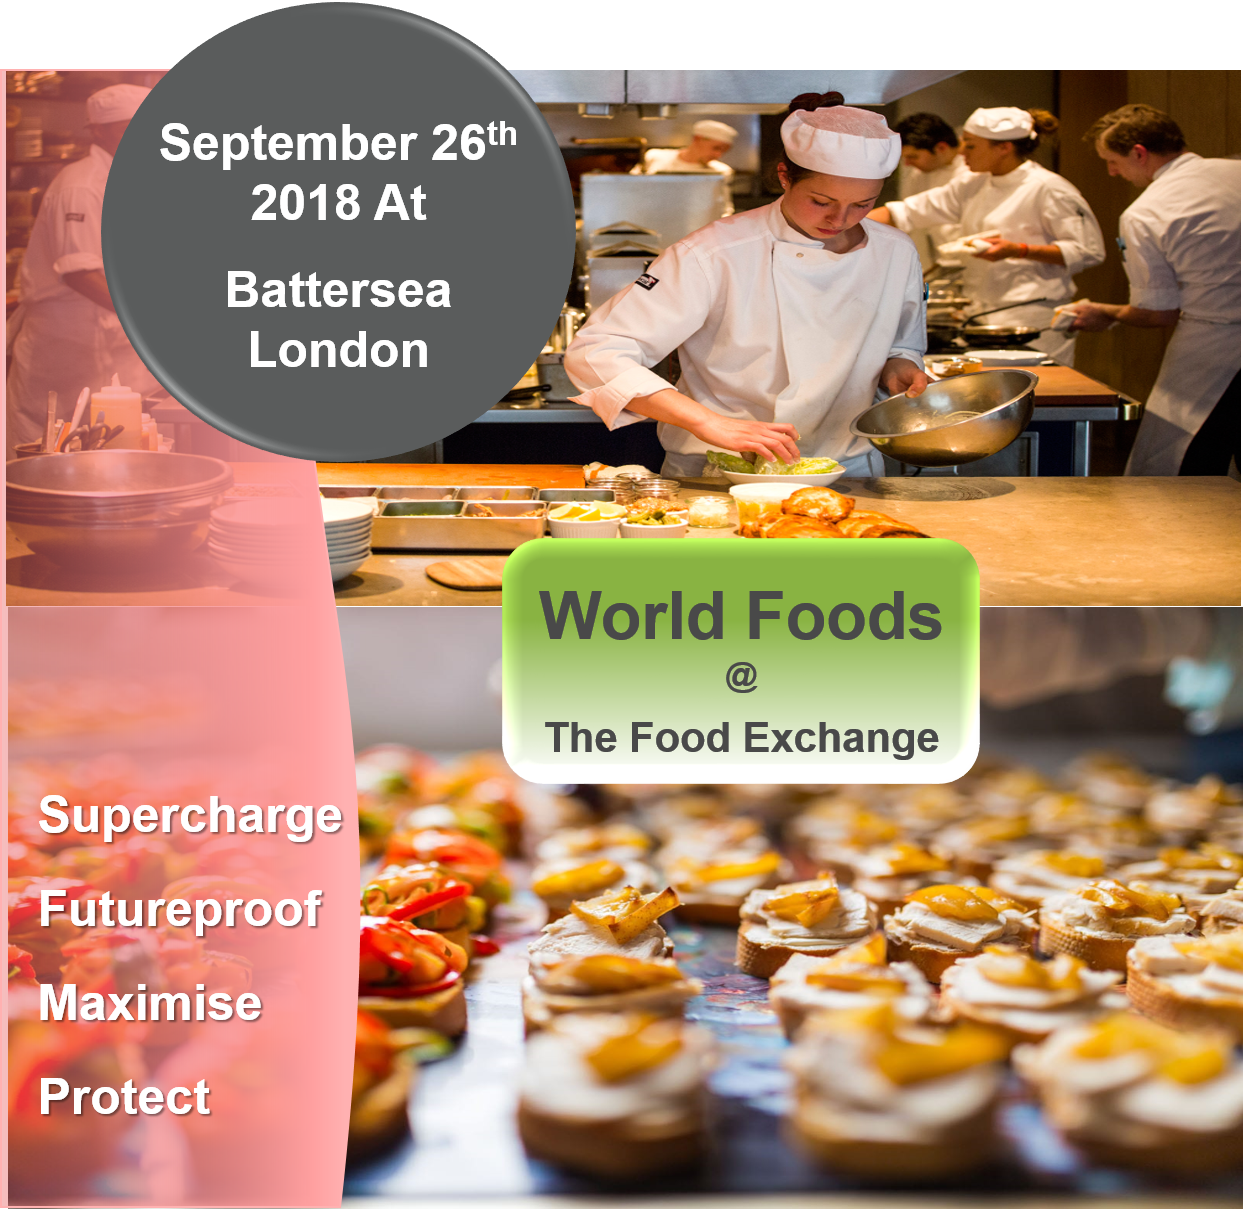 World Food at the Food Exchange